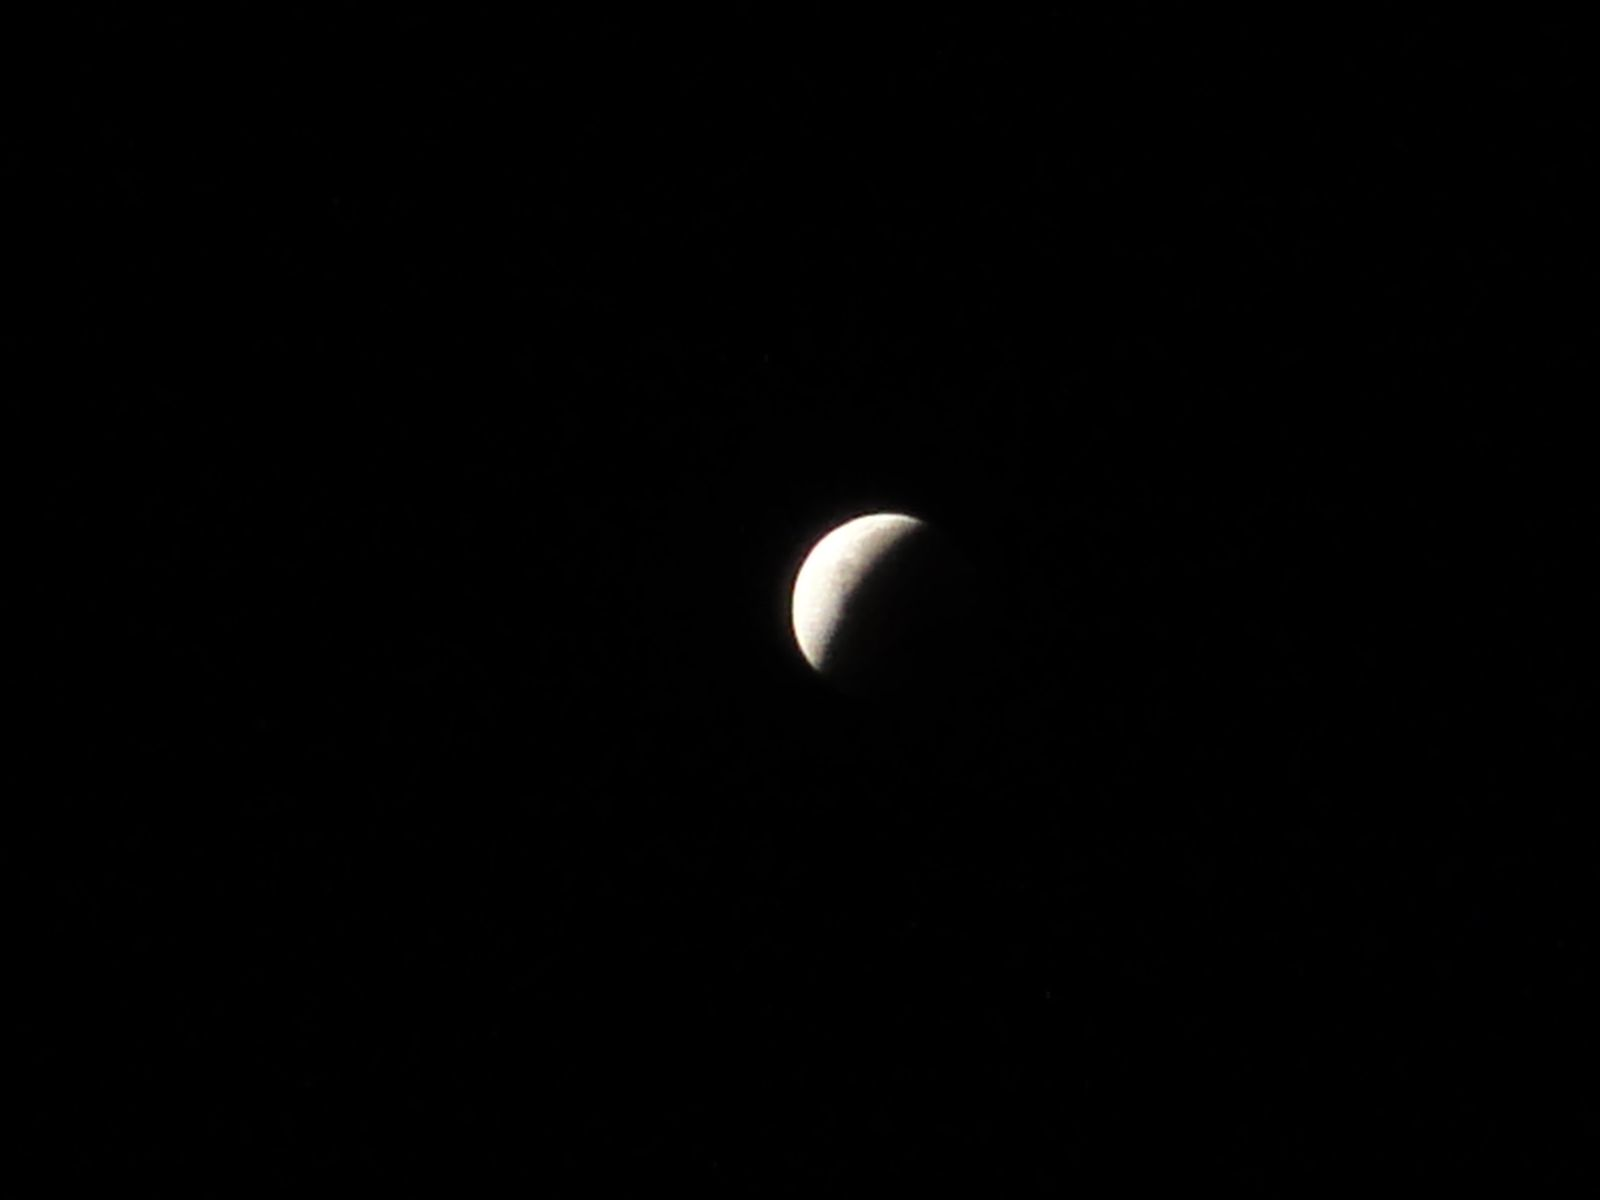 lunar_eclipse_167.jpg